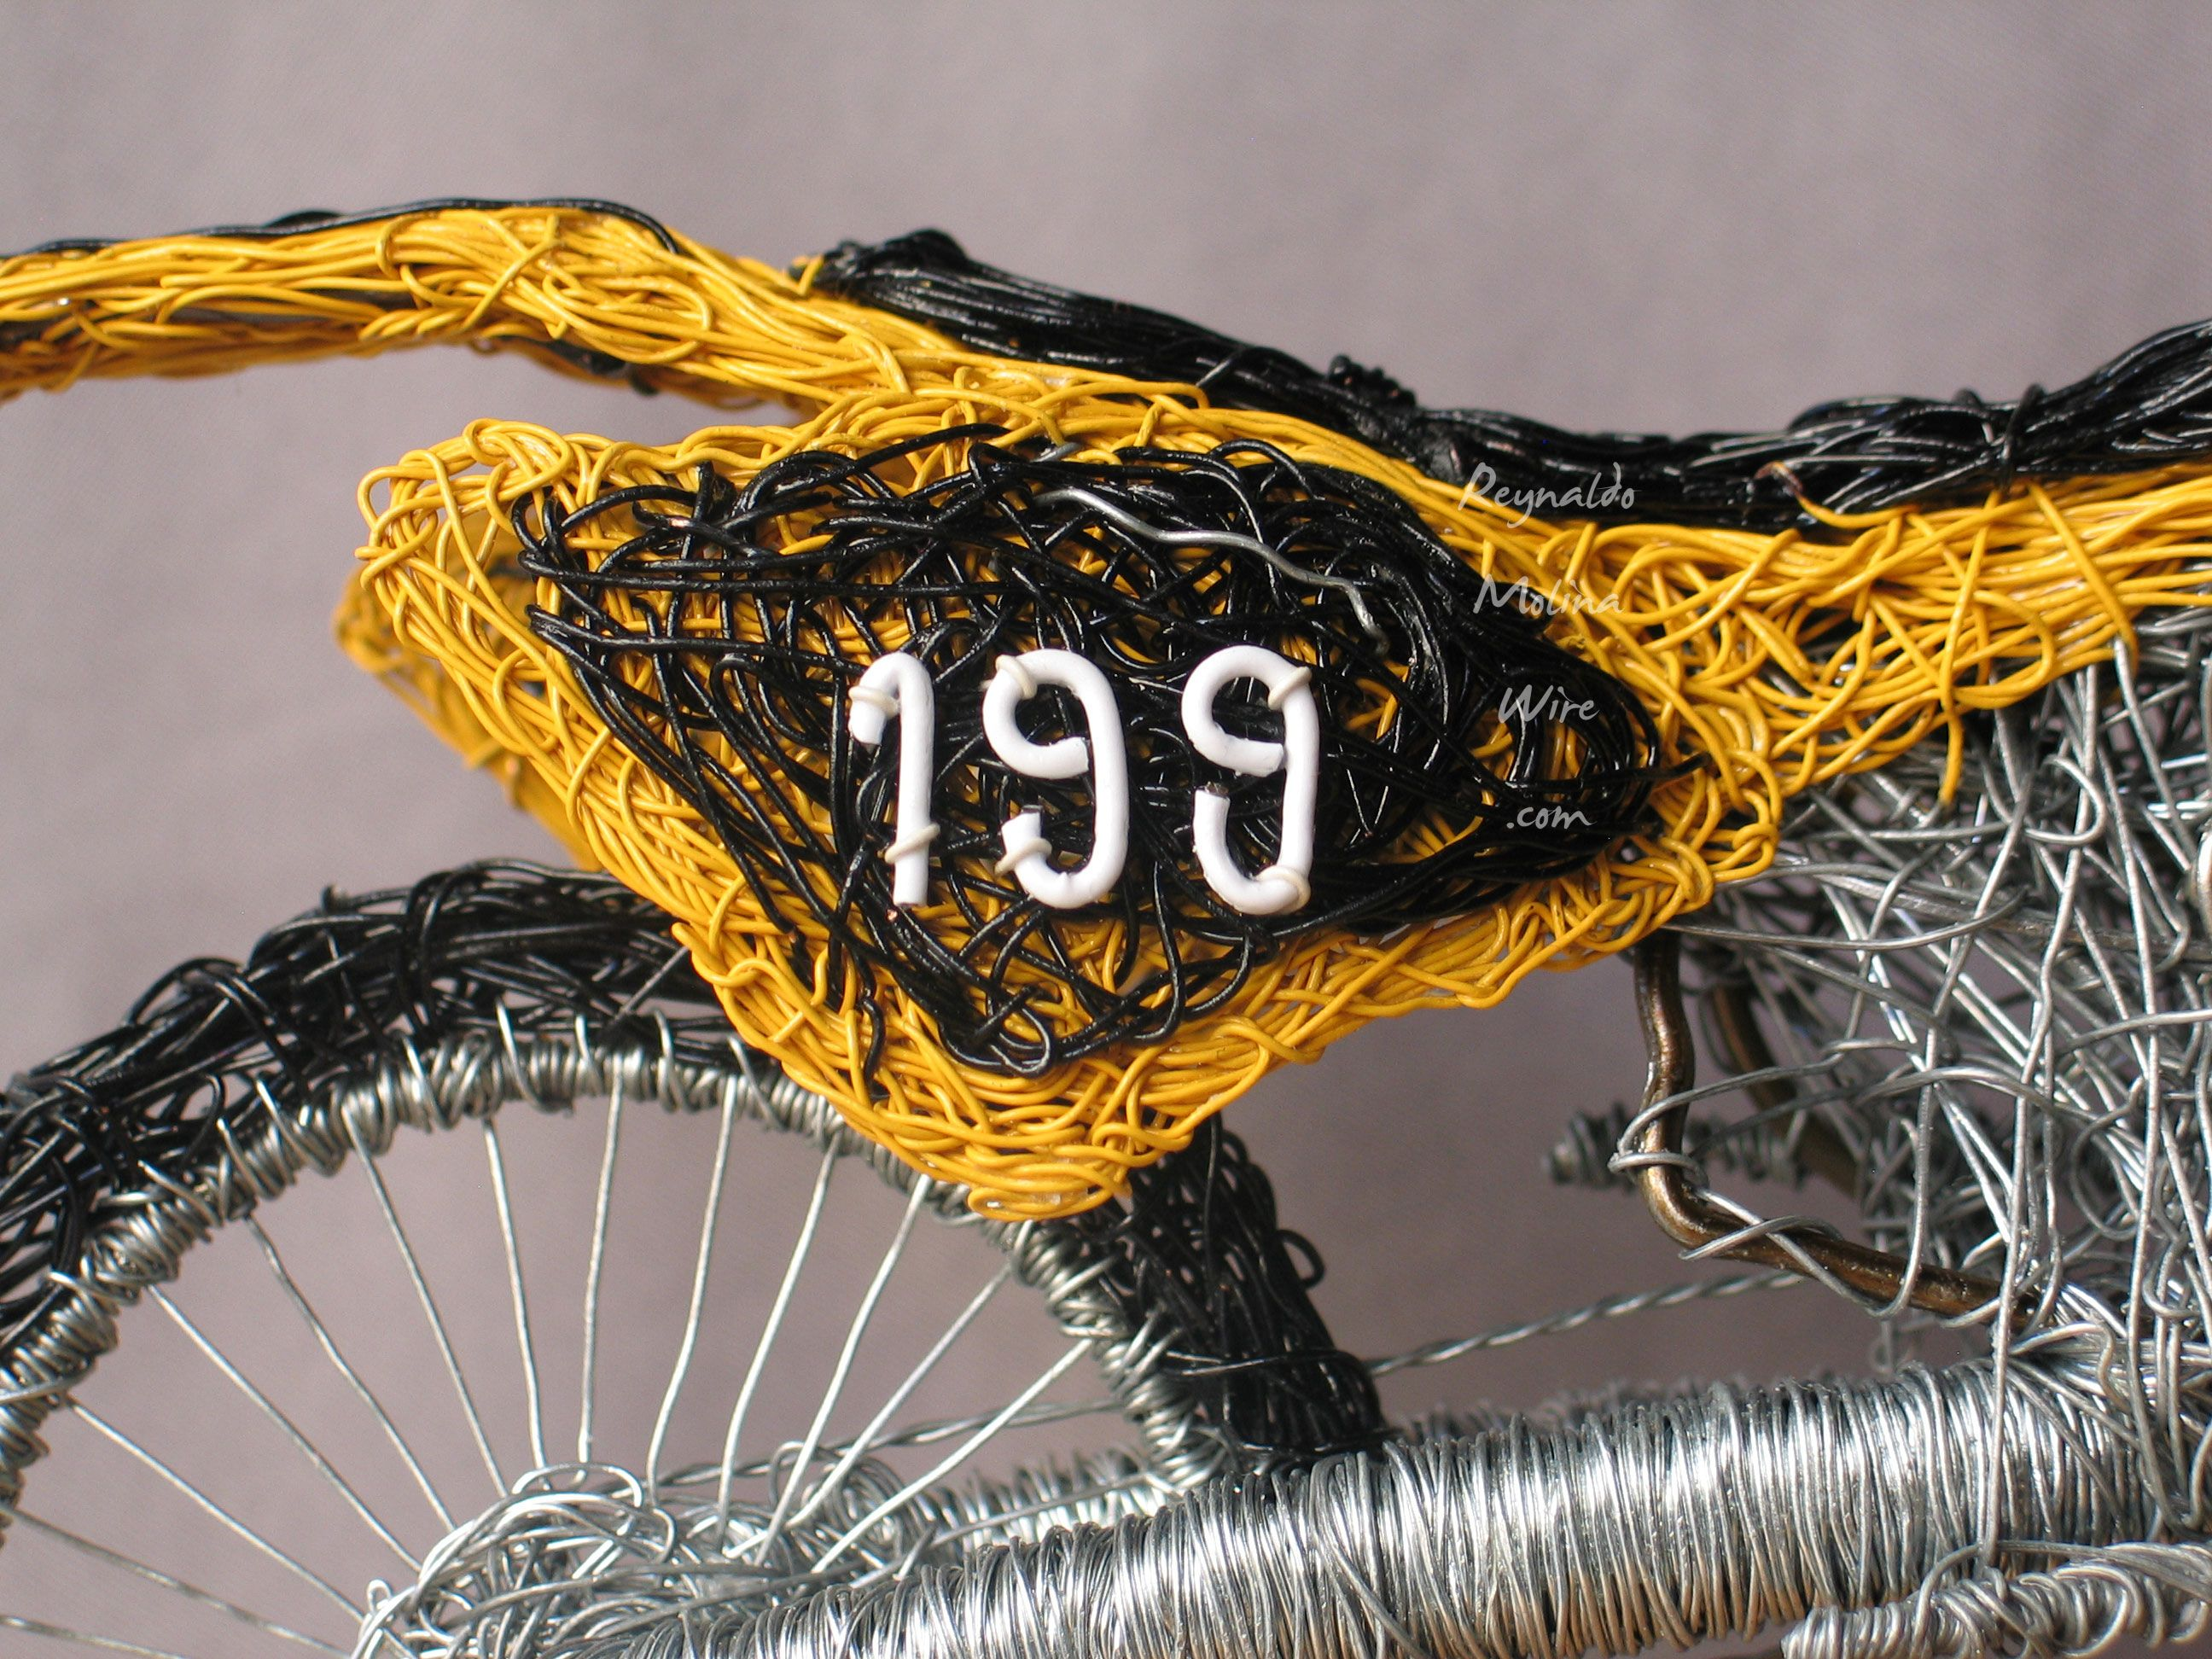 close up view of wire sculpture of travis pastrana dirt bike